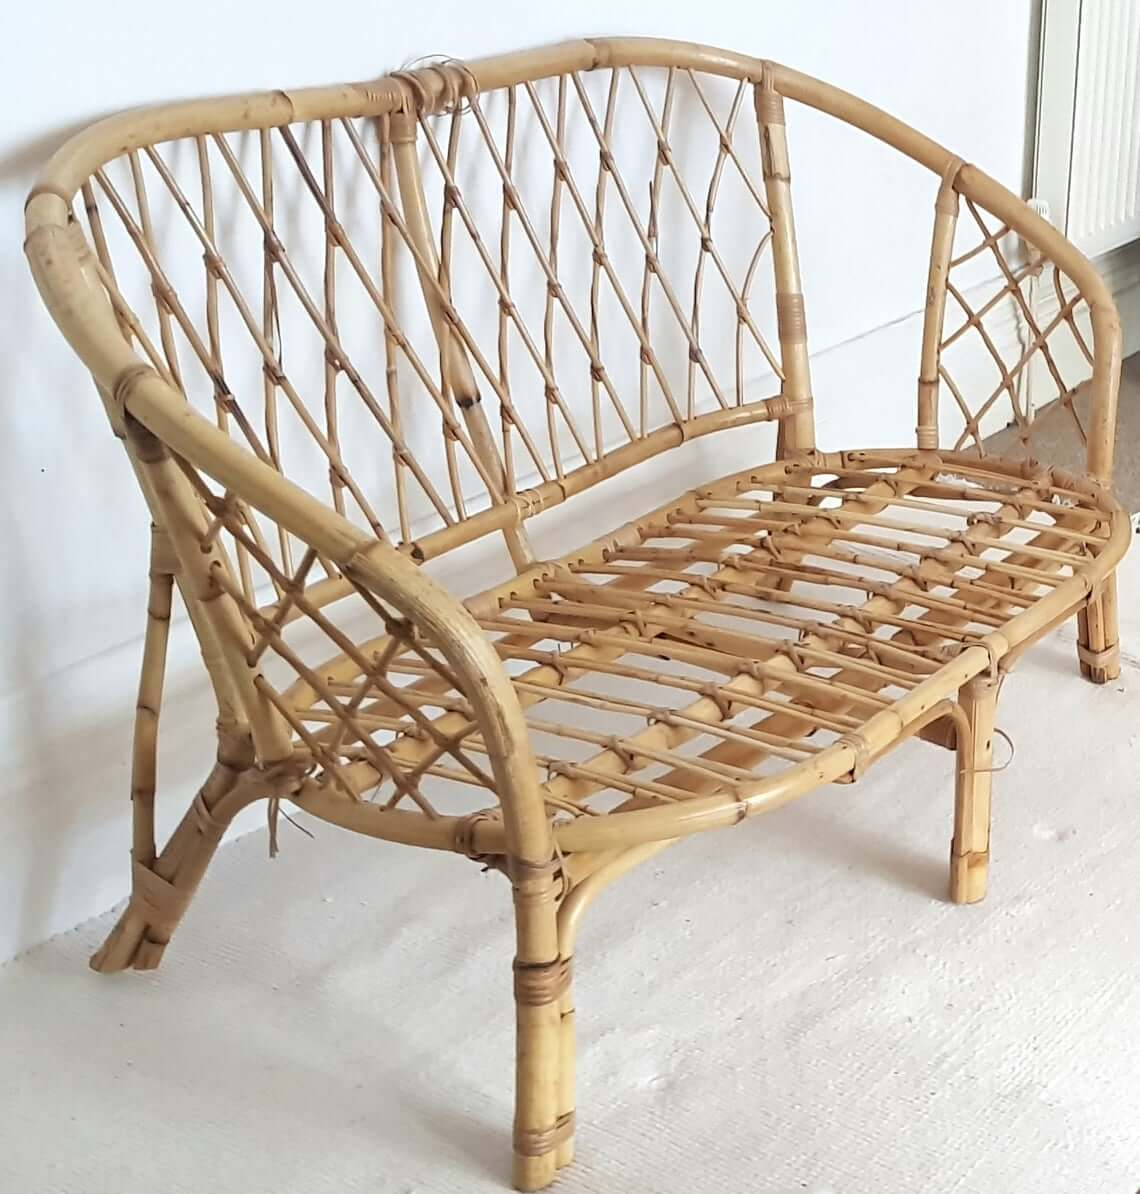 All-Natural Bamboo Loveseat for Front Porch